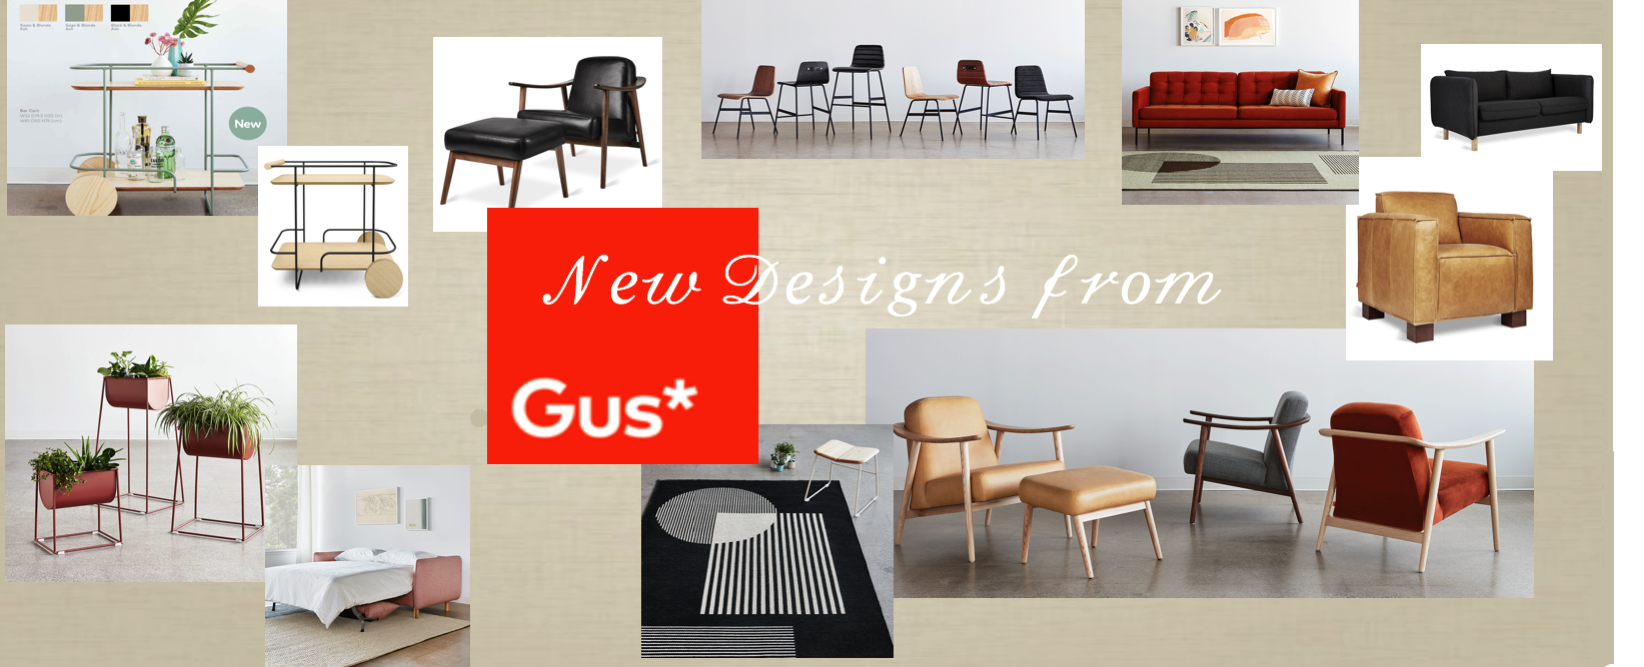 header-for-gus-new-products.png